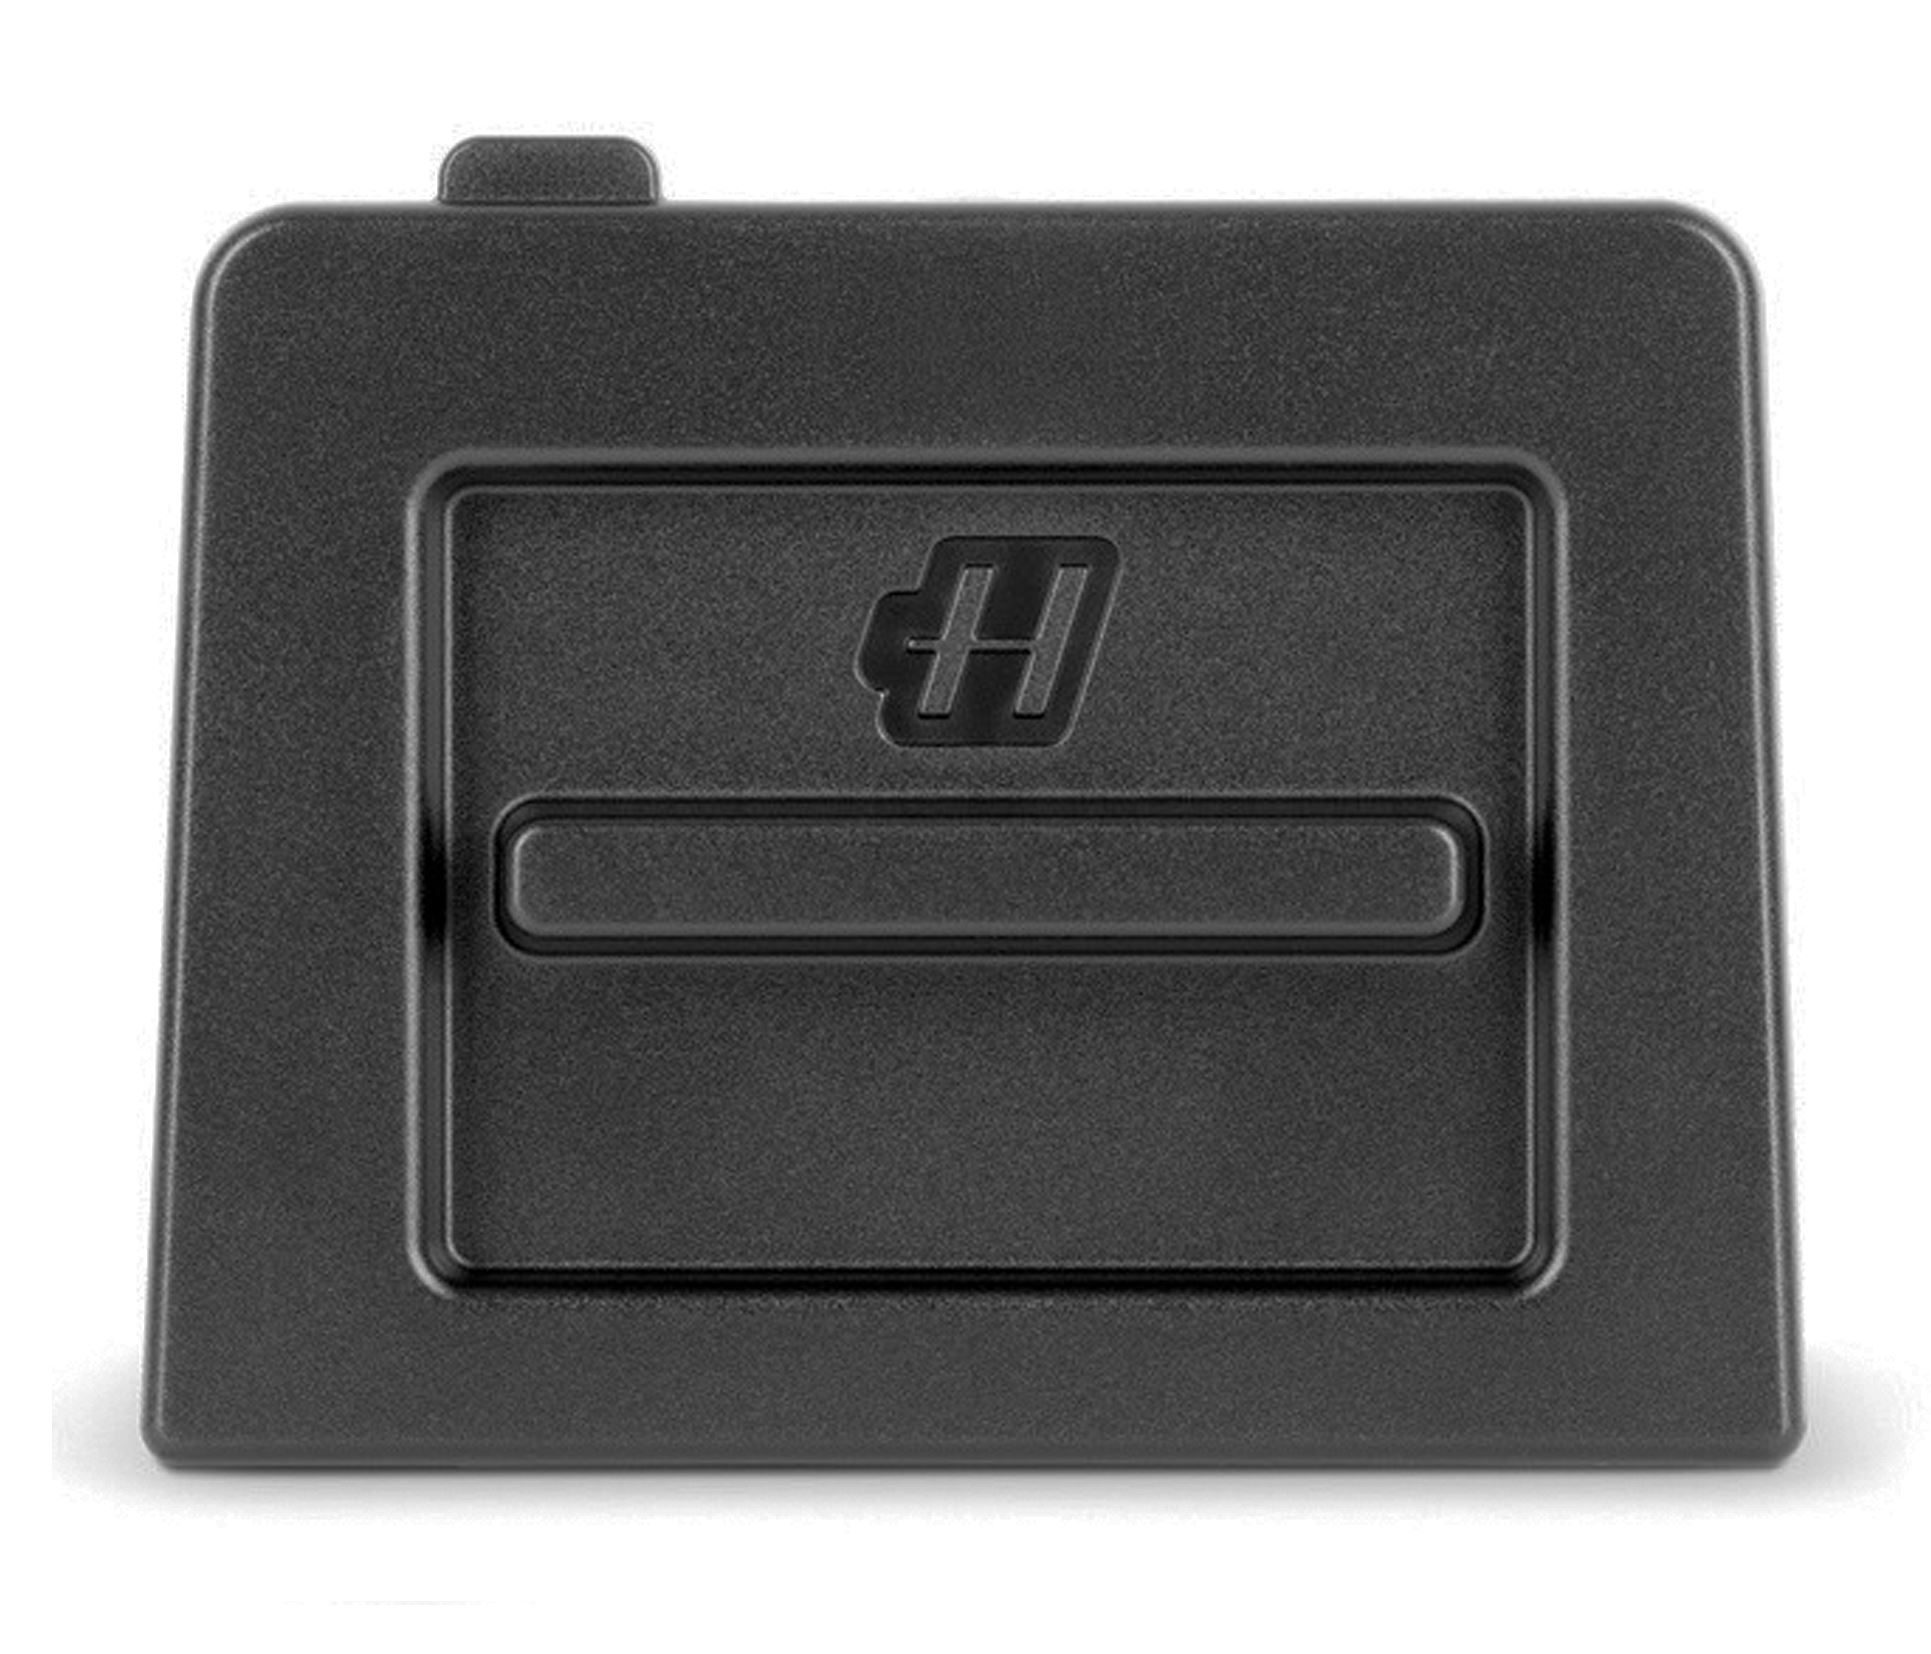 Hasselblad Top Cover H Camera Body (3053340)